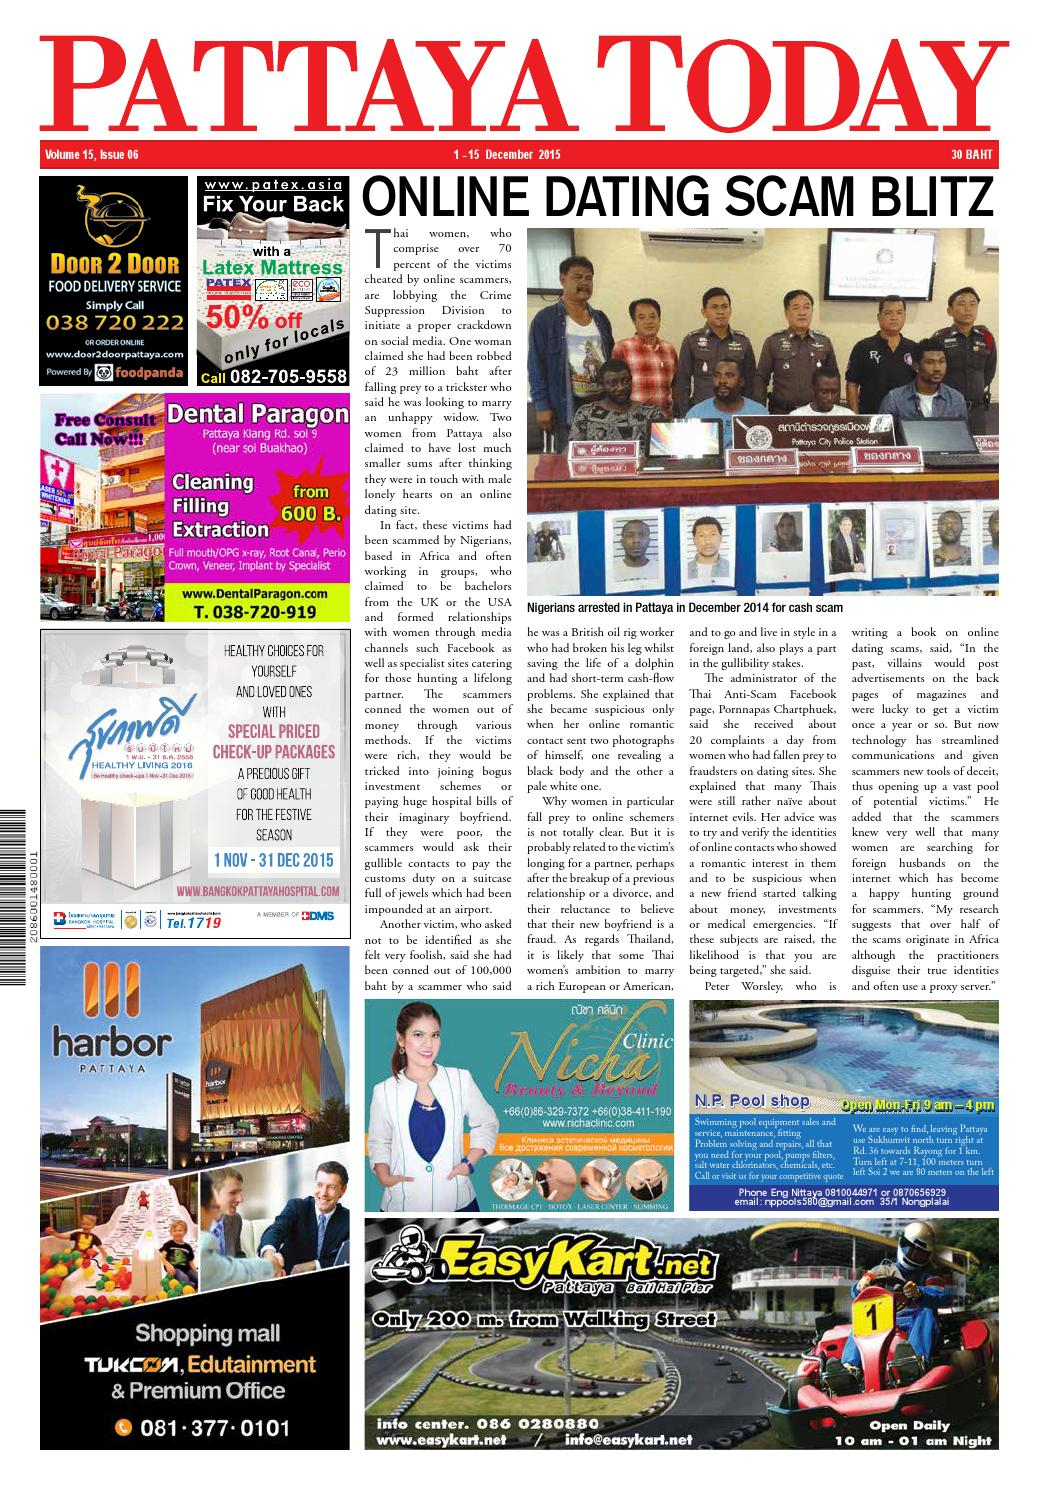 Pattaya Today Vol 15 Issue 06 - 1-15 December 2015 By